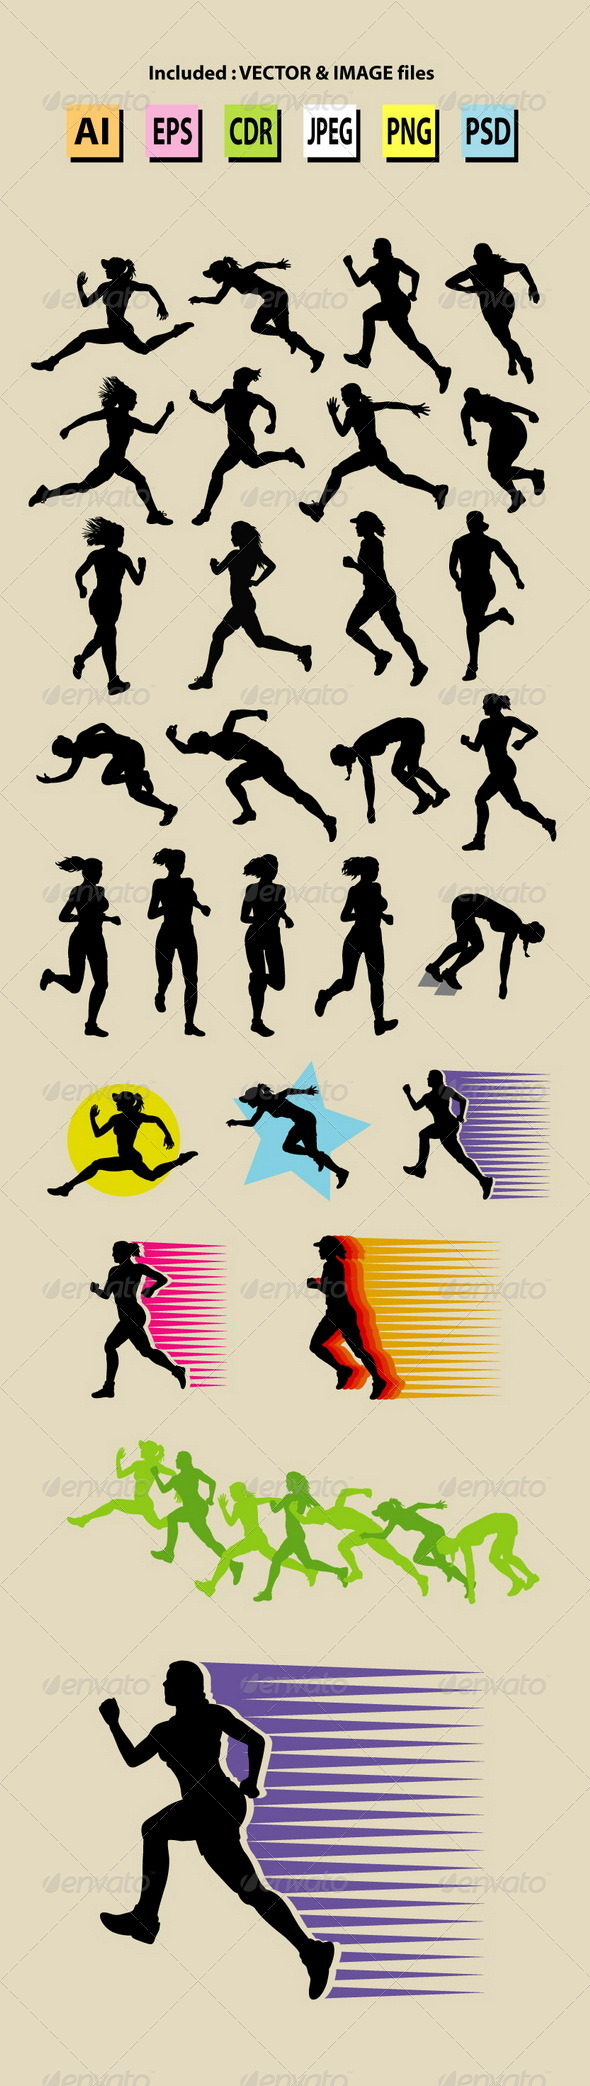 Female Running Sport Silhouettes - Sports/Activity Conceptual